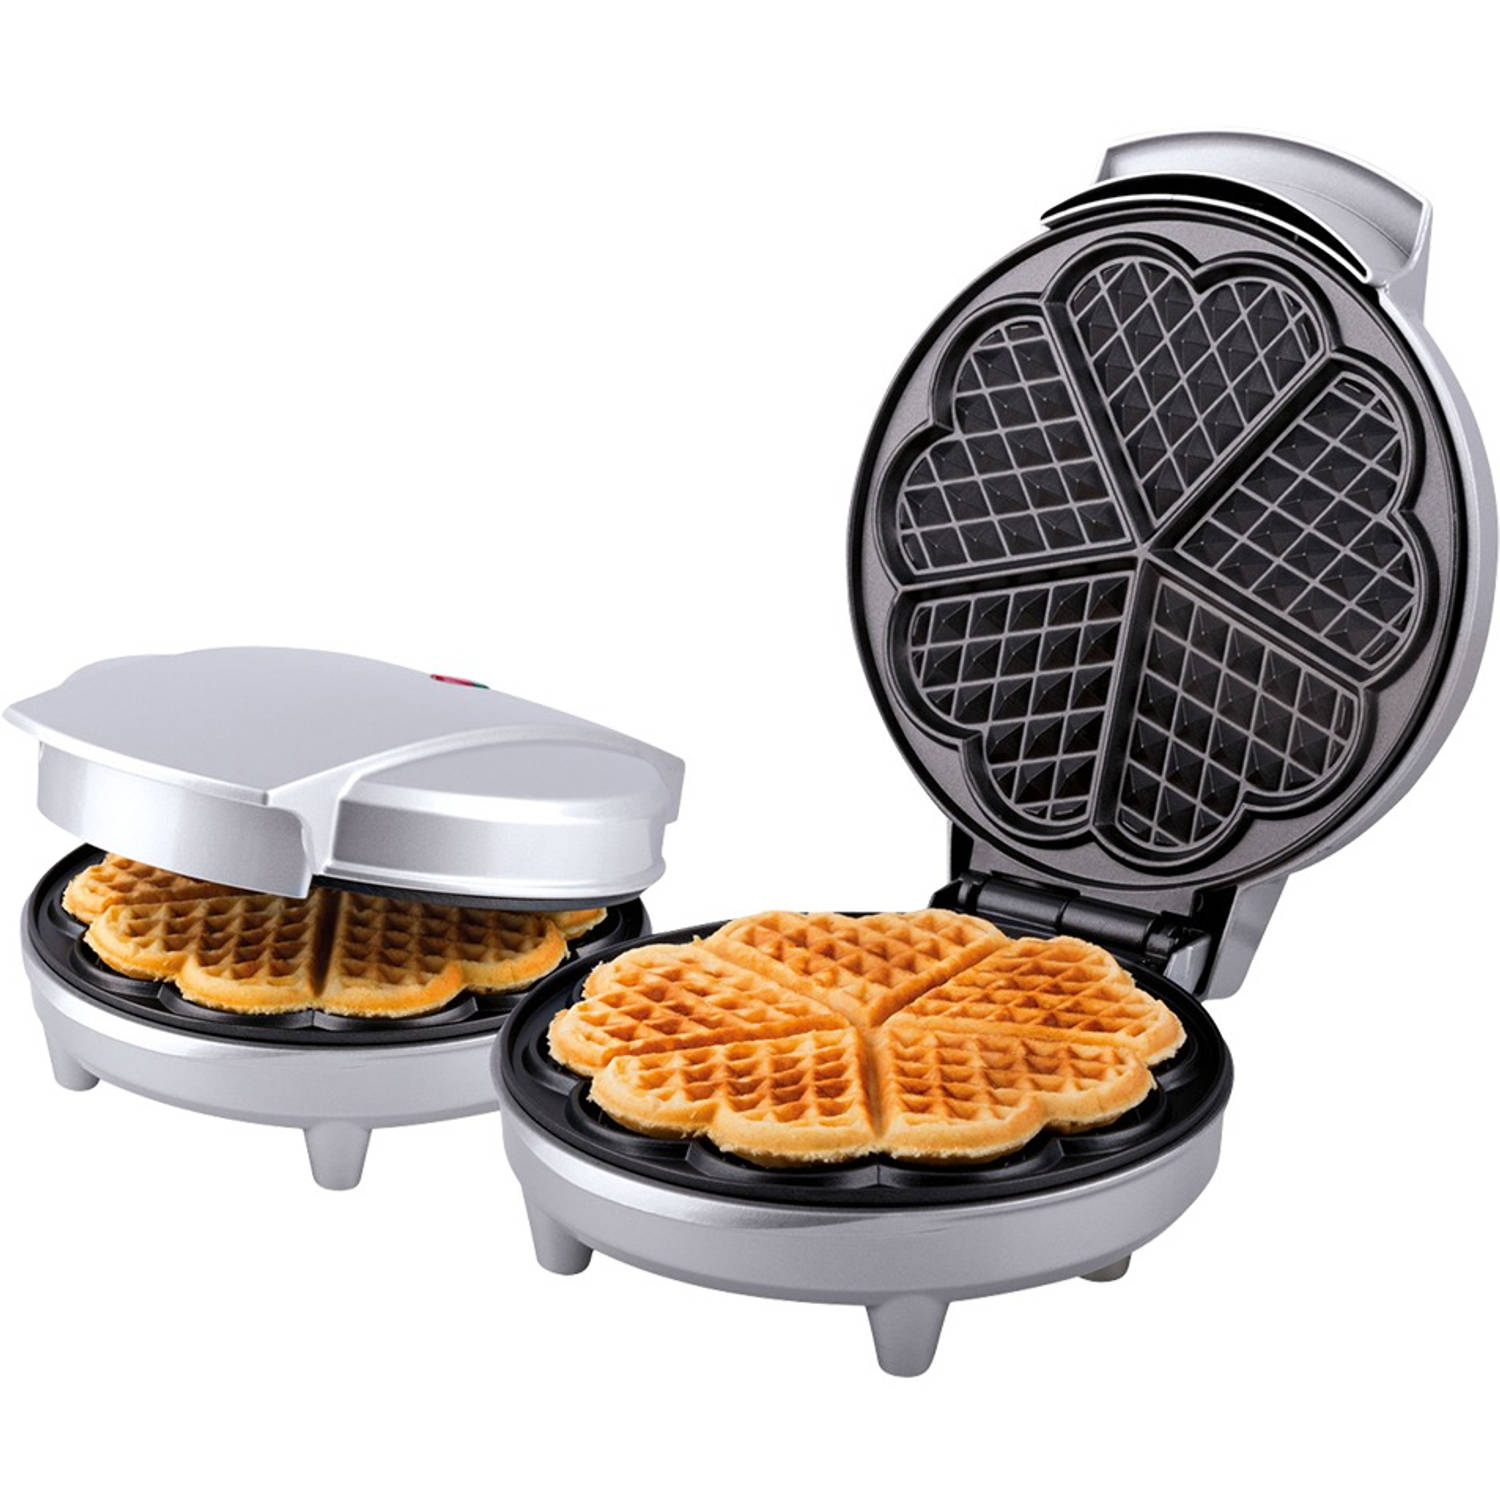 Trebs 99259 wafelmaker